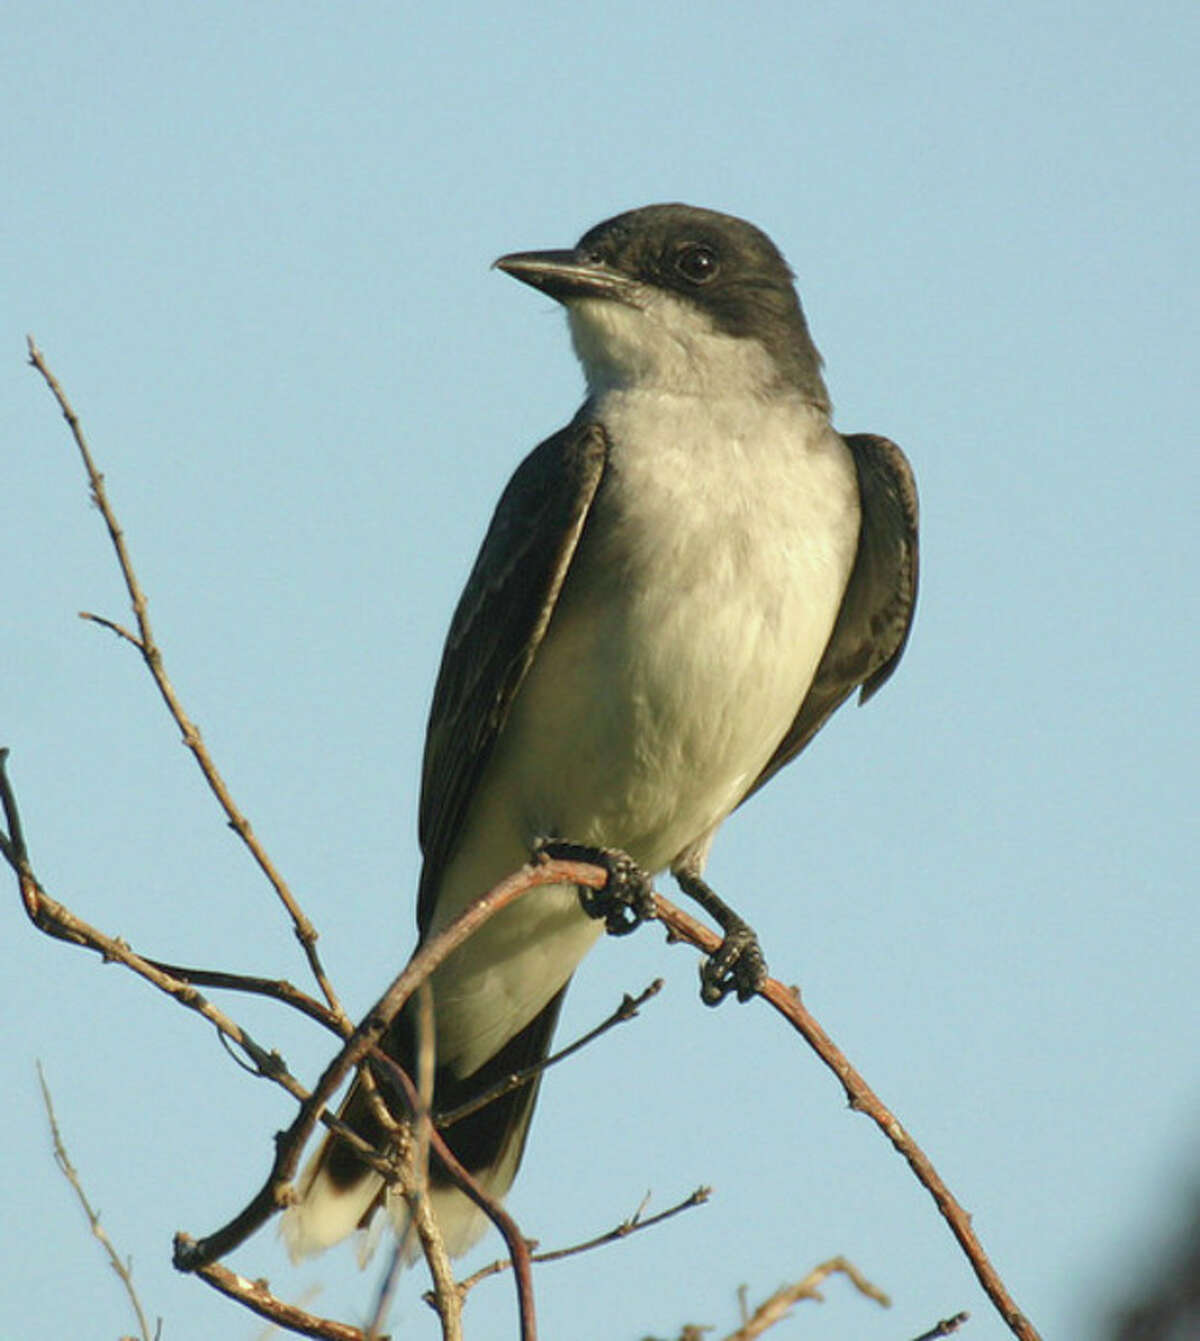 Hour photo/Chris Bosak An Eastern Kingbird searches for insects at Cove Island Wildlife Sanctuary.